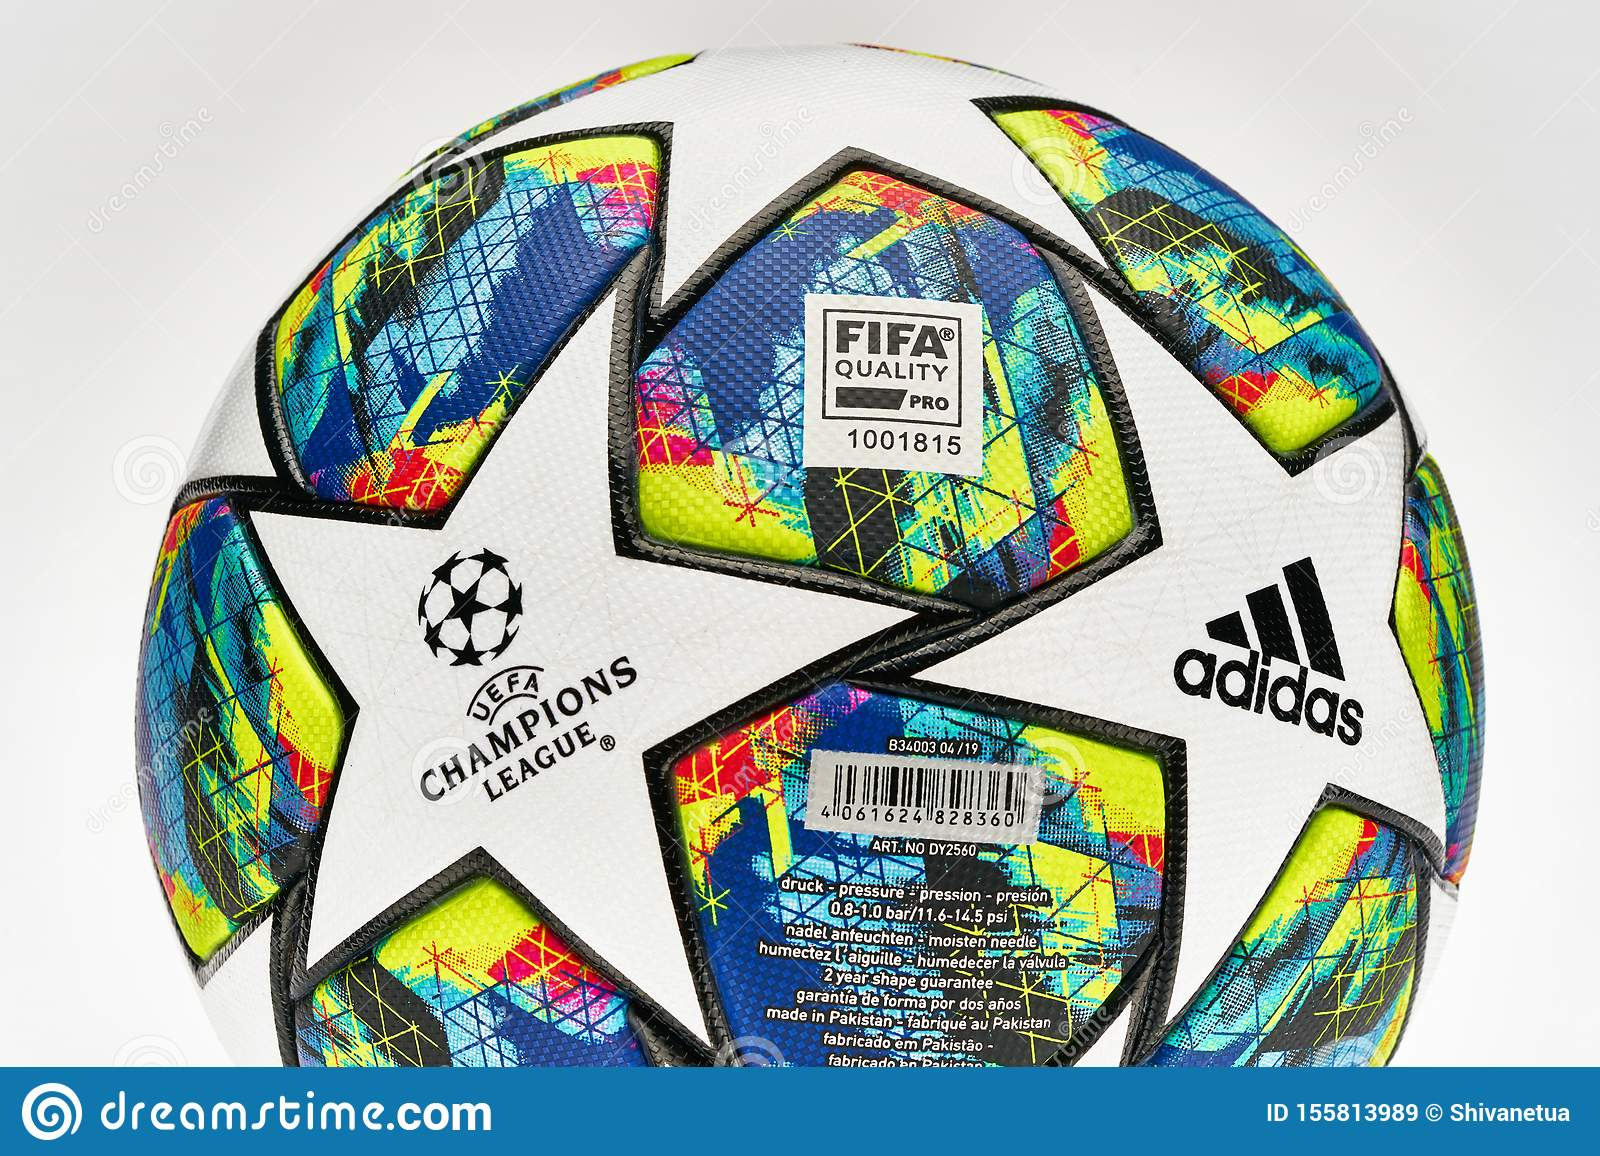 official match ball of uefa champions league season 2019 2020 editorial stock image image of olimpiysky ball 155813989 https www dreamstime com official match ball uefa champions league season kyiv ukraine august close up studio shot plain background image155813989